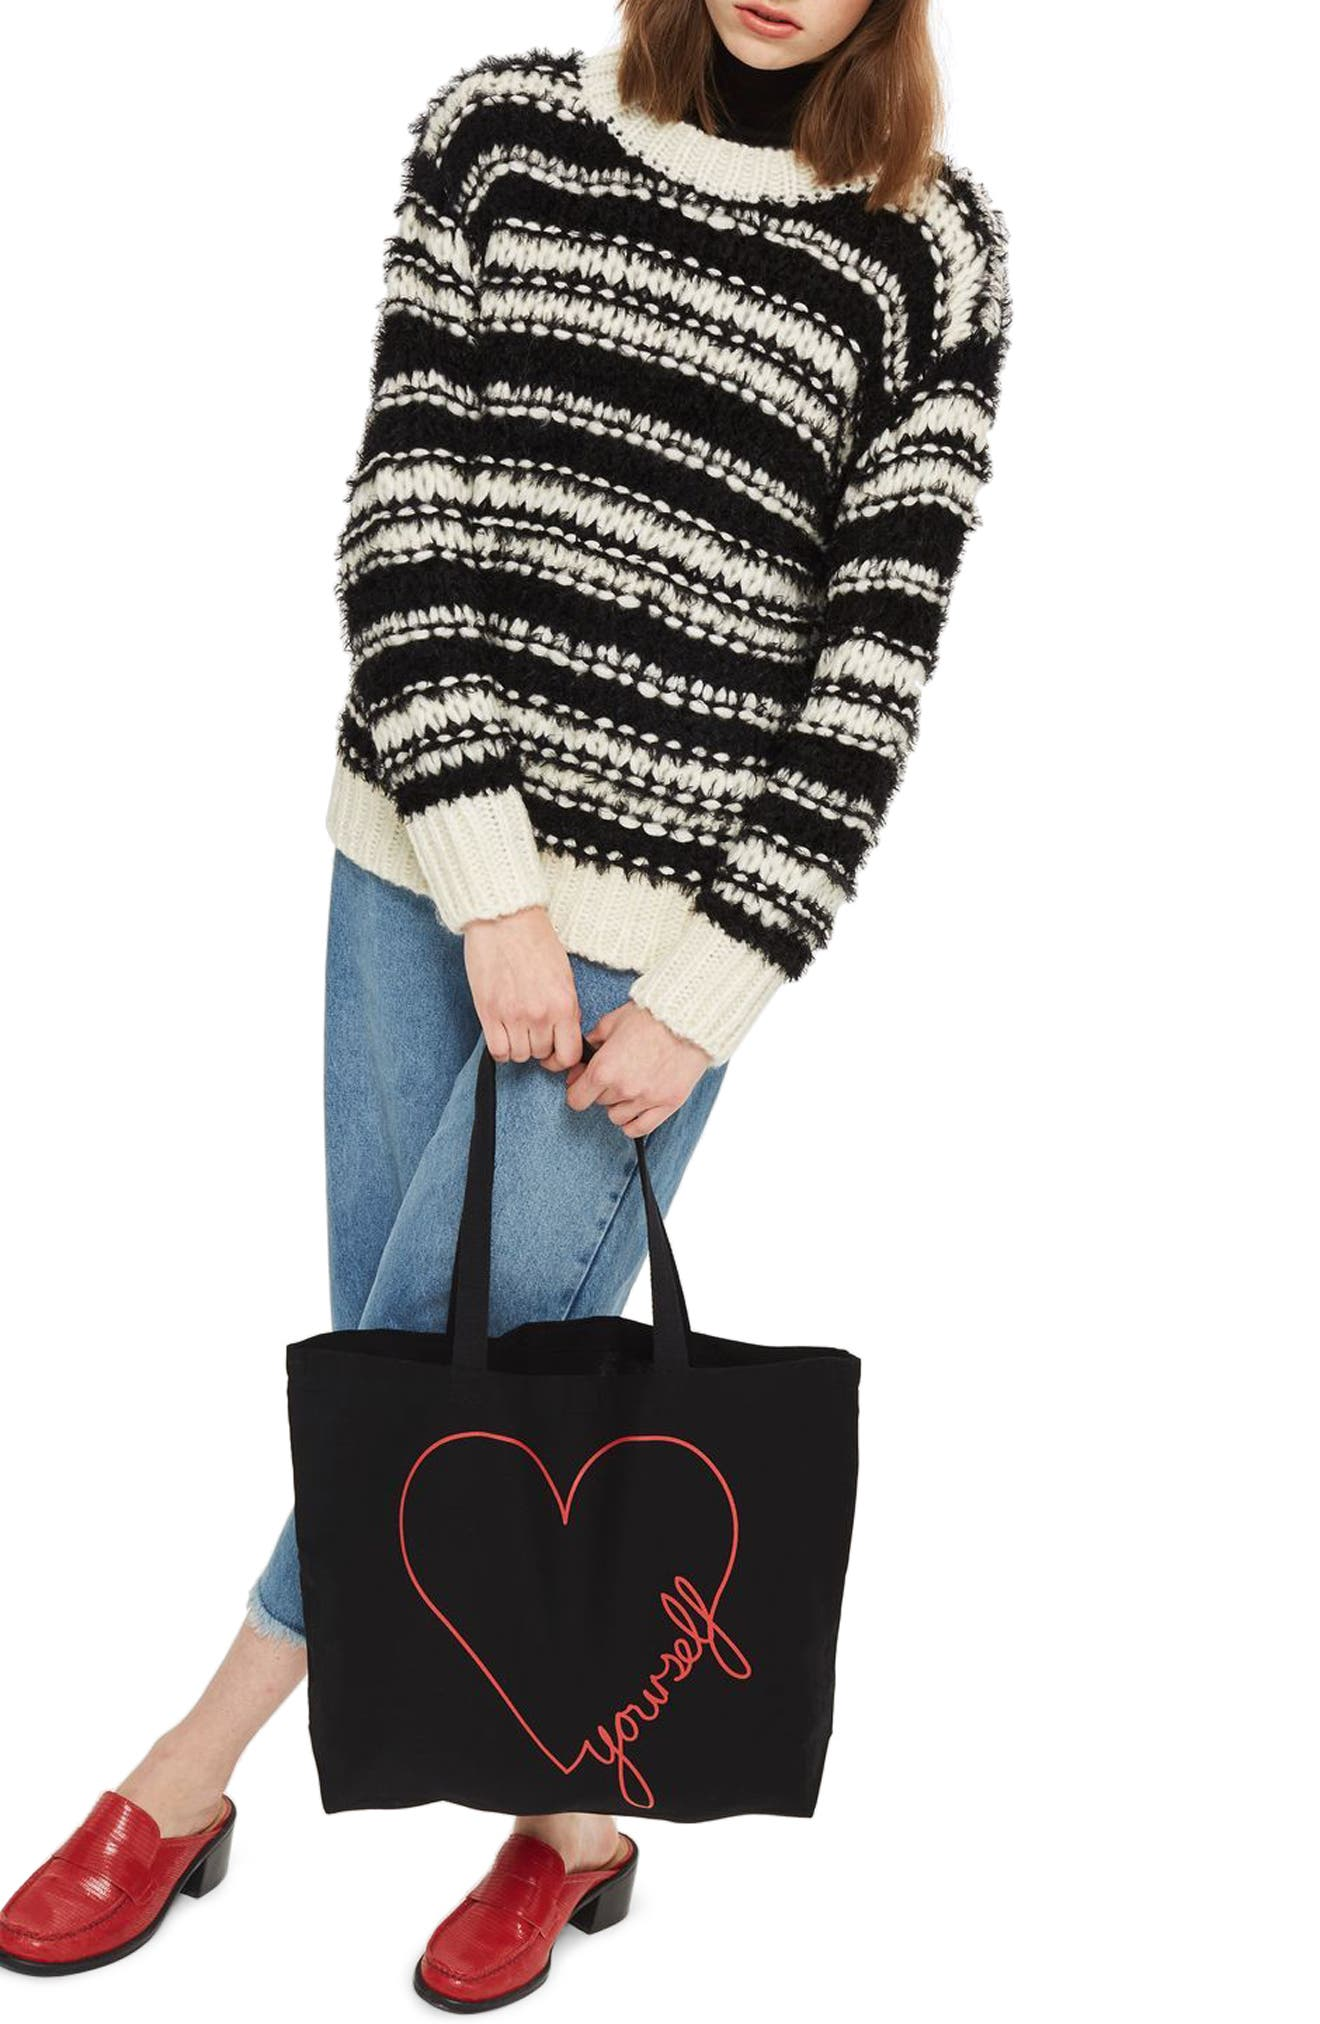 Love Yourself Canvas Tote Bag,                             Alternate thumbnail 2, color,                             001